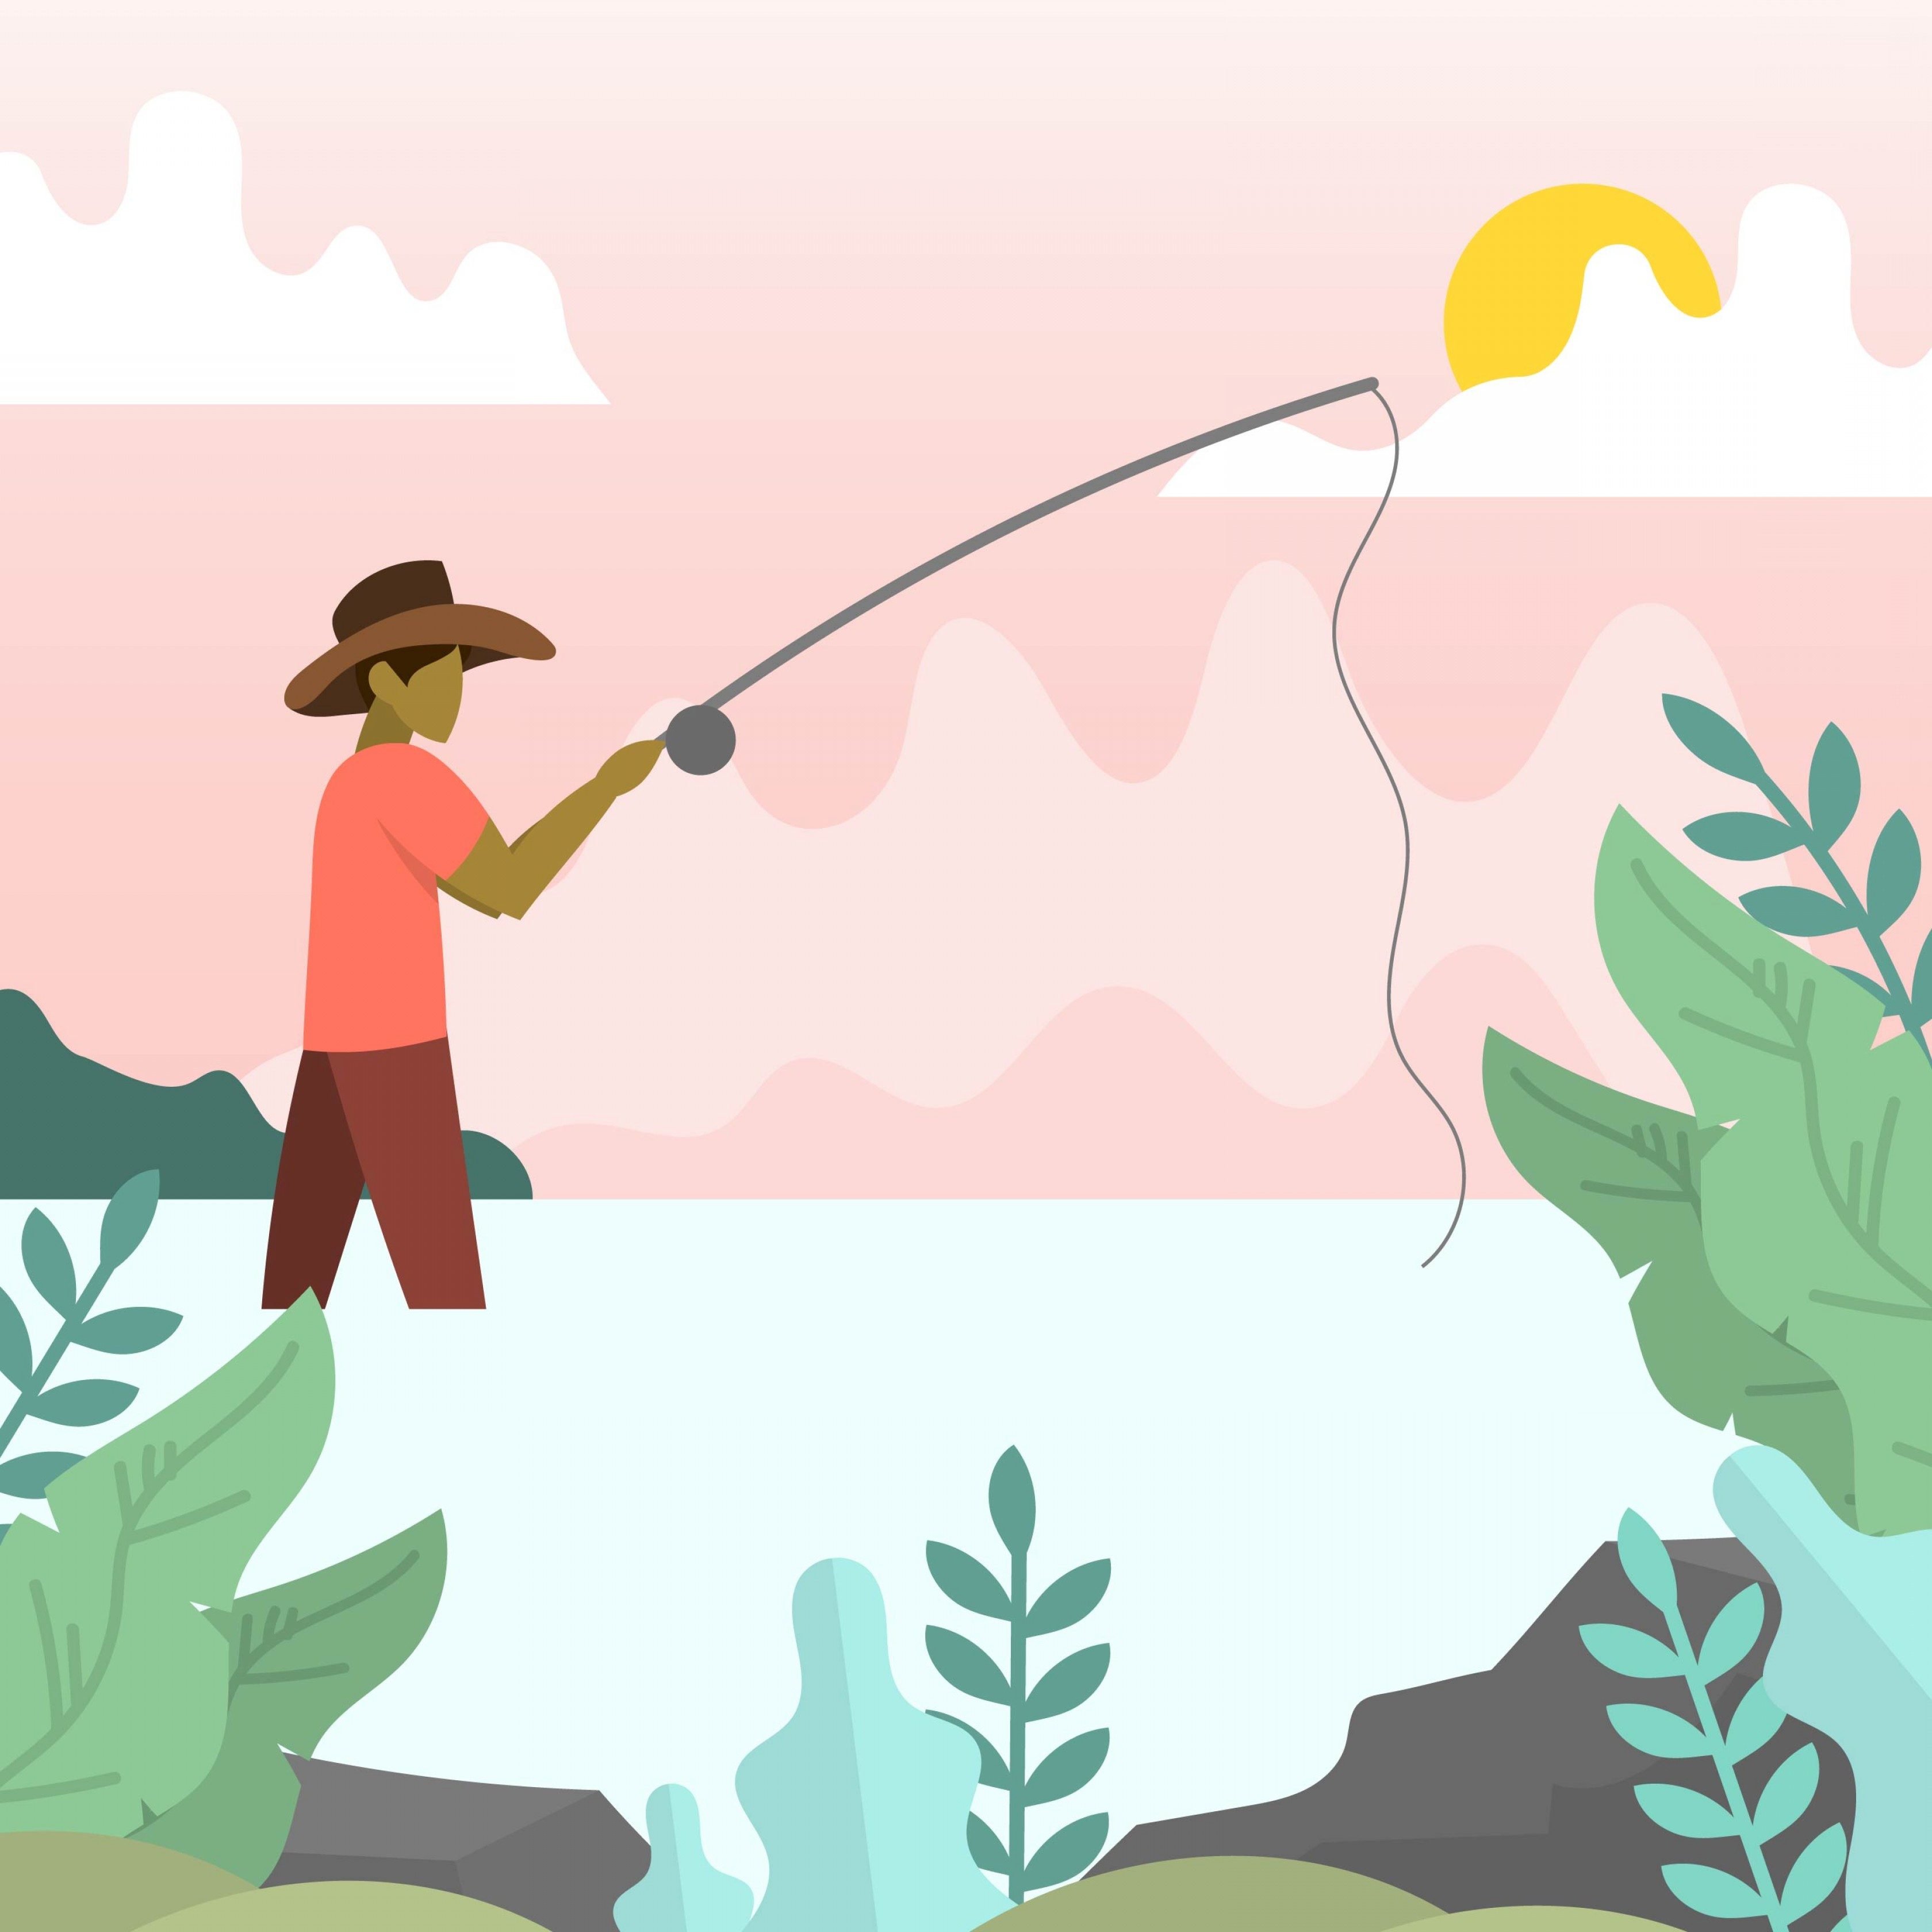 Detailed Vector Art Fly Fisherman: Flat Modern Fly Fisherman With Minimalist Background Vector Illustration